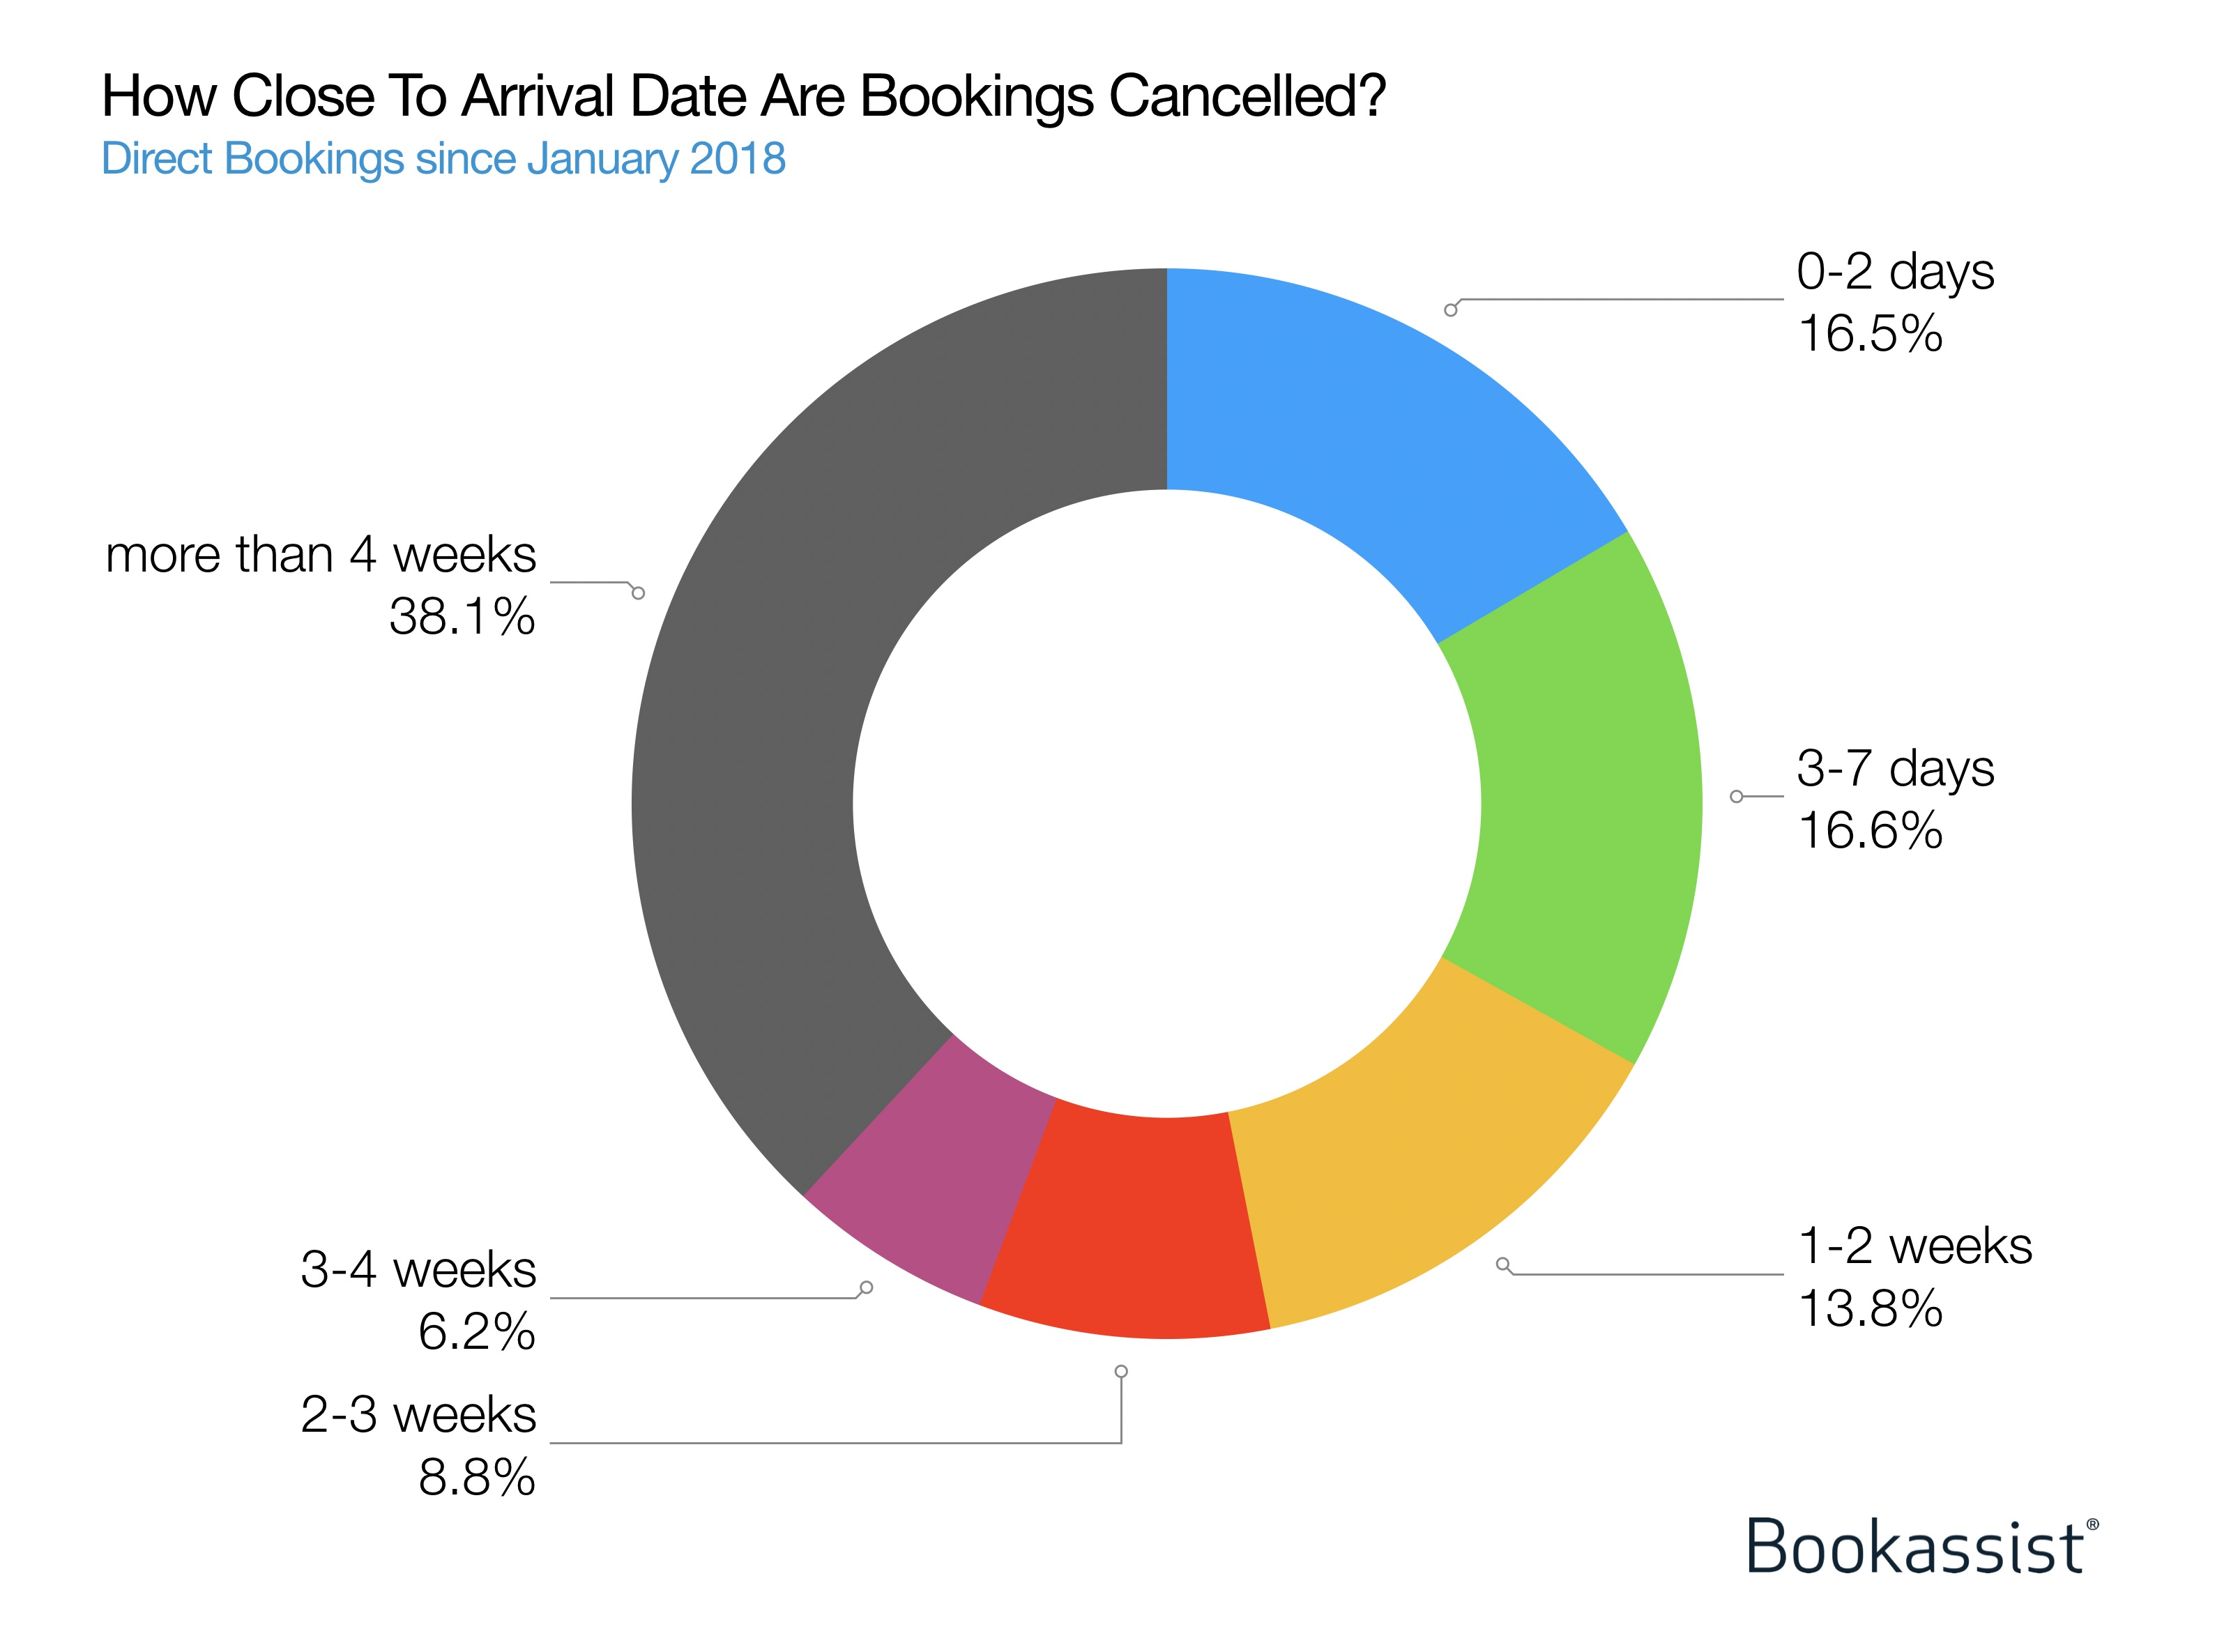 Figure 3: Bookassist data on how soon before arrival that direct bookings tend to be cancelled based on data since January 2018.